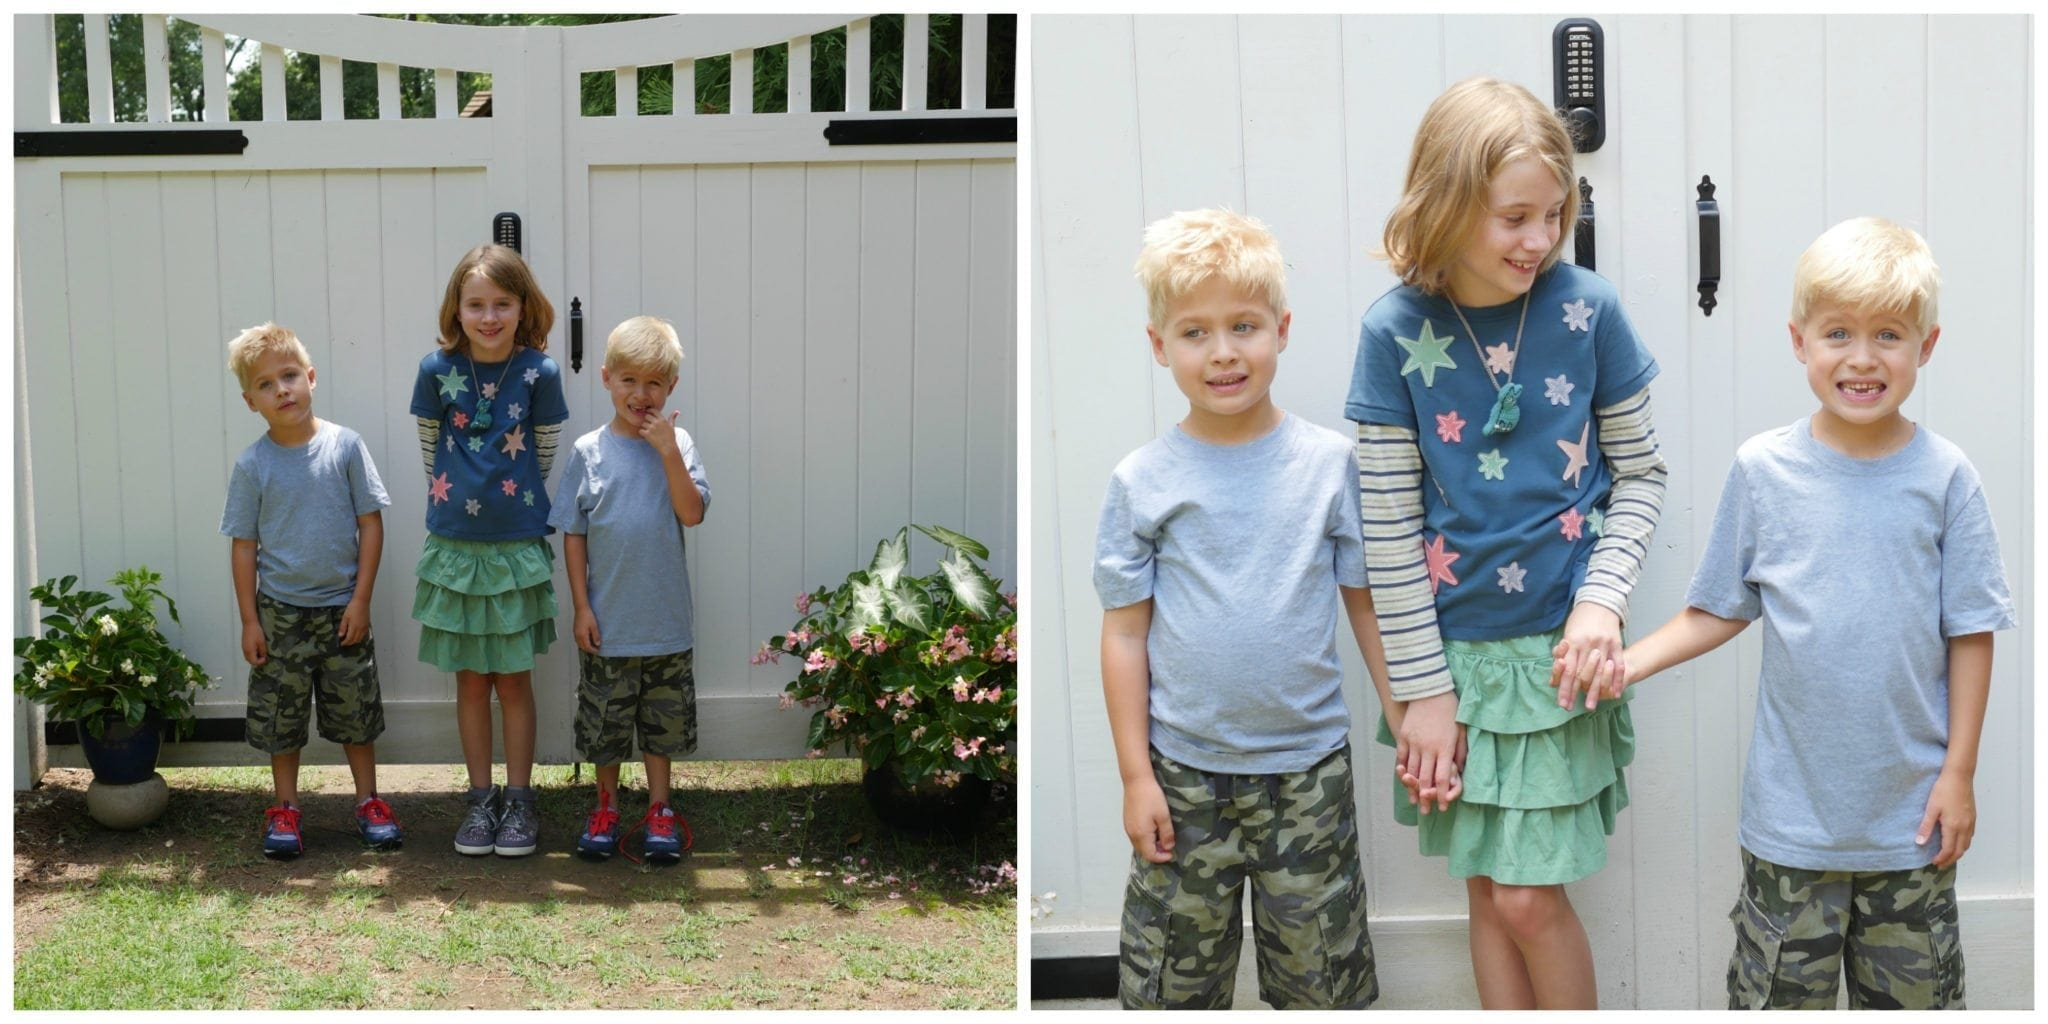 How to photograph kids.